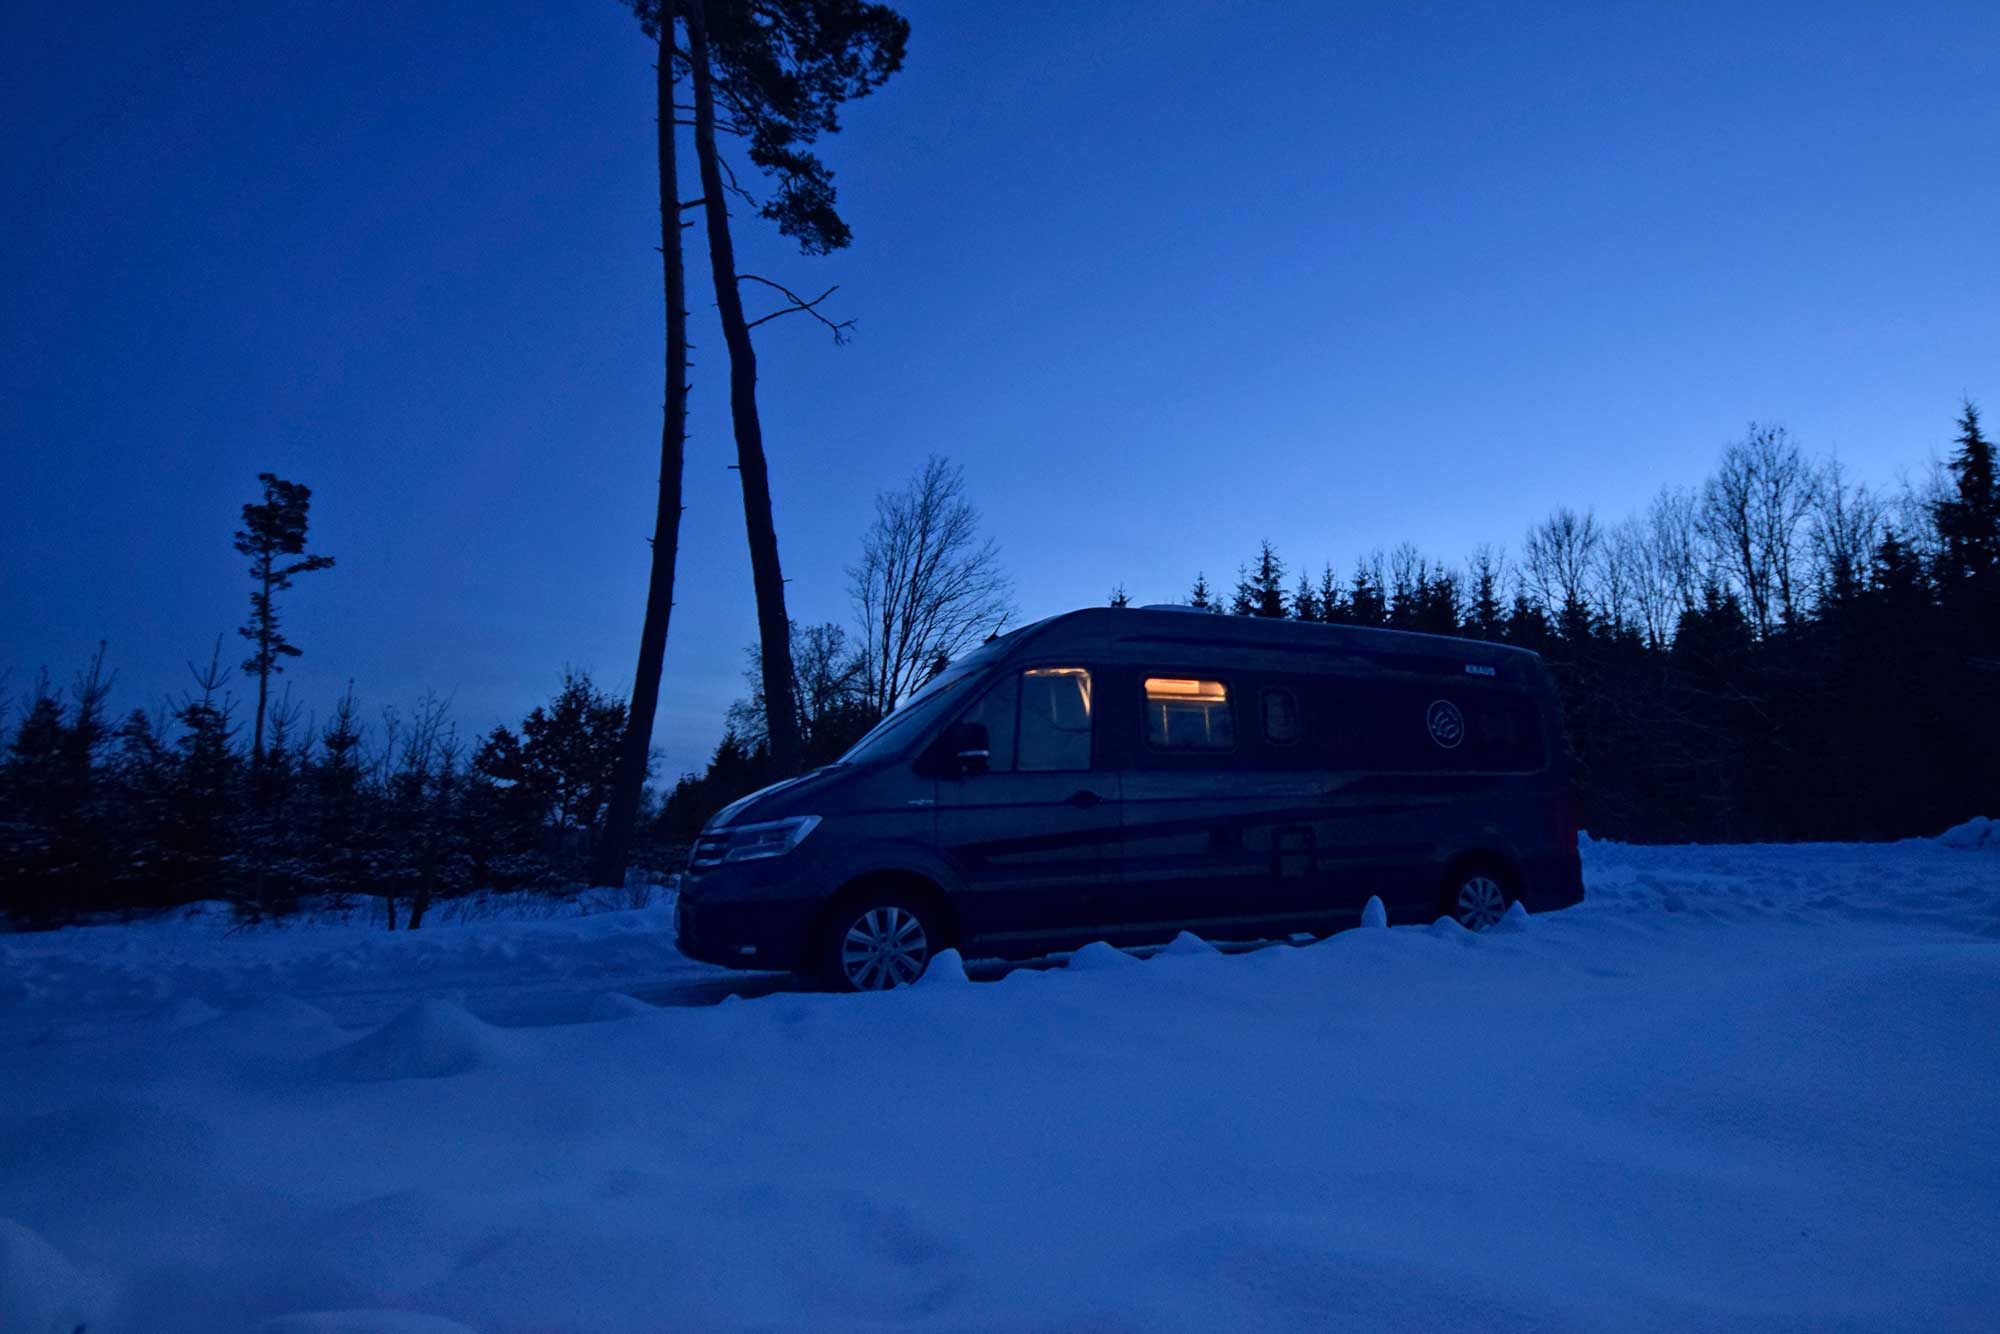 Knaus Boxdrive in Winterlandschaft